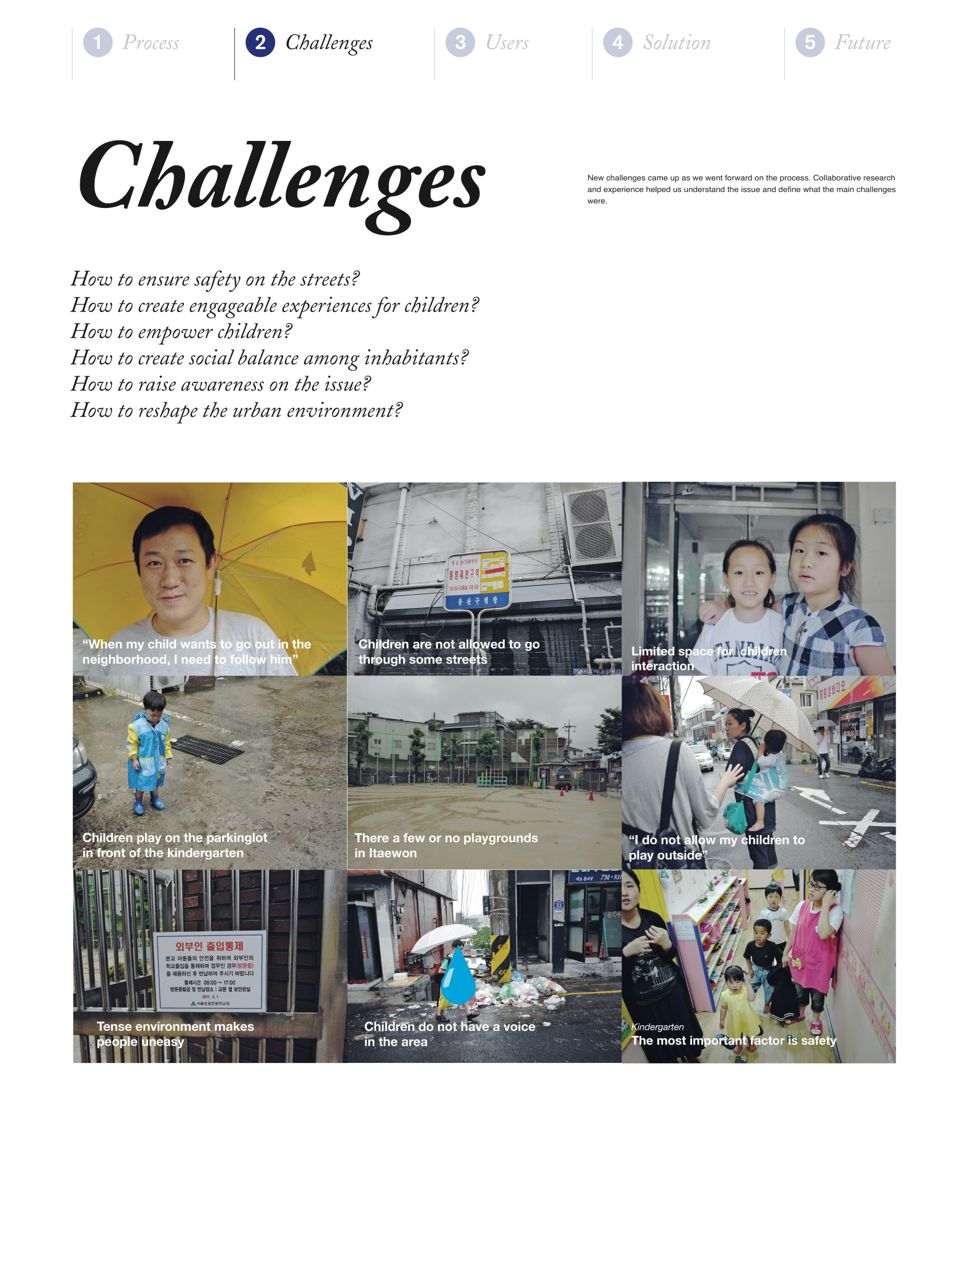 Different challenges were found when exploring Itaewon.